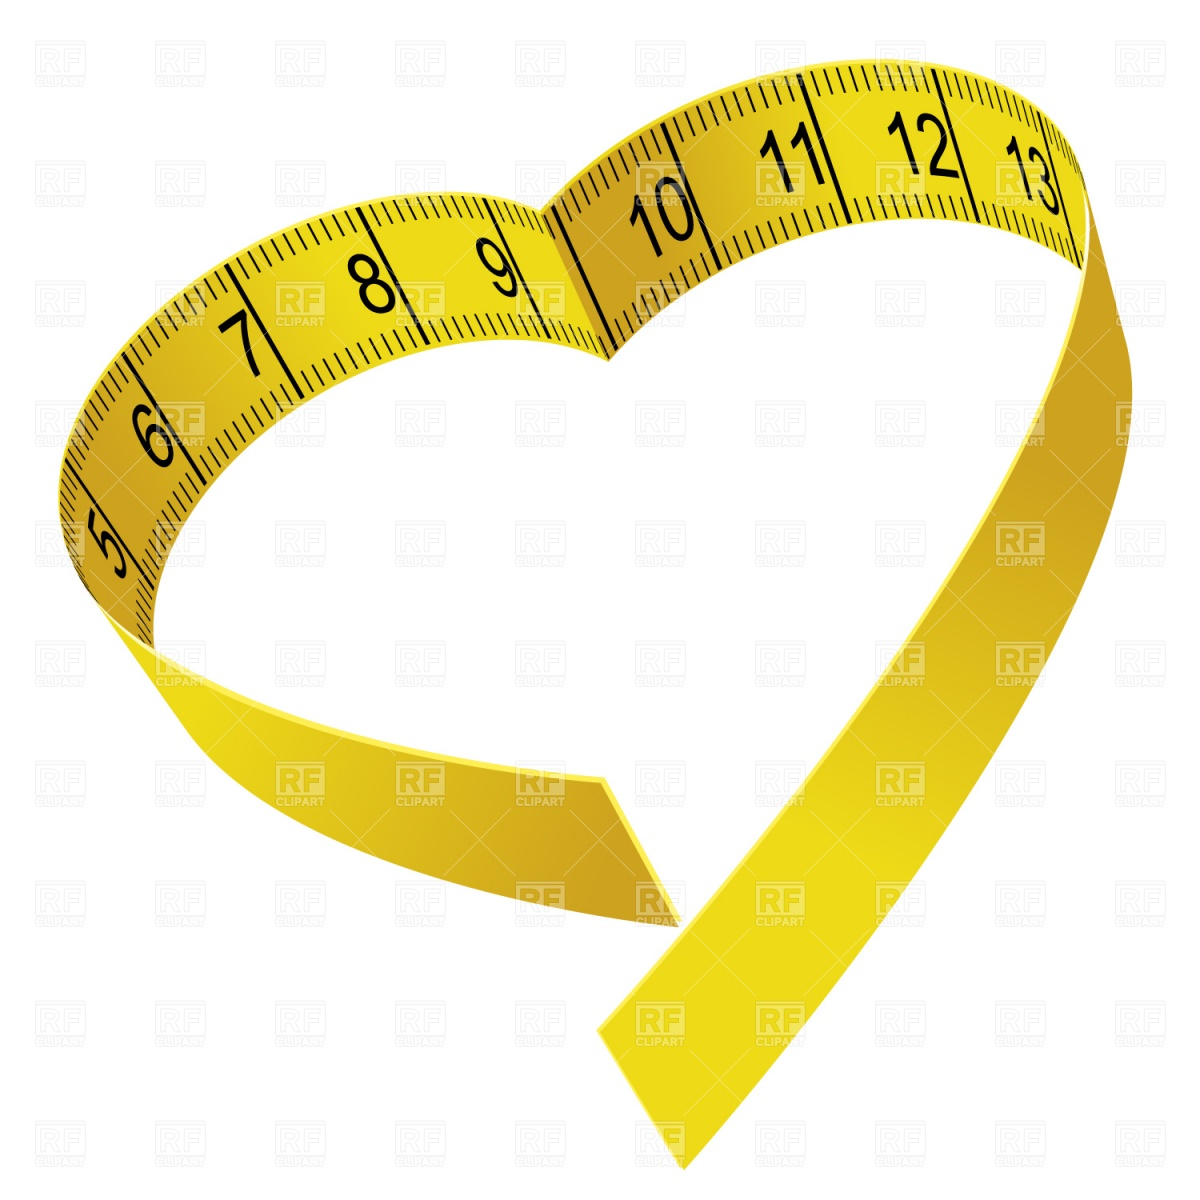 Measuring Tape Free Clipart #1 - Tape Measure Border PNG